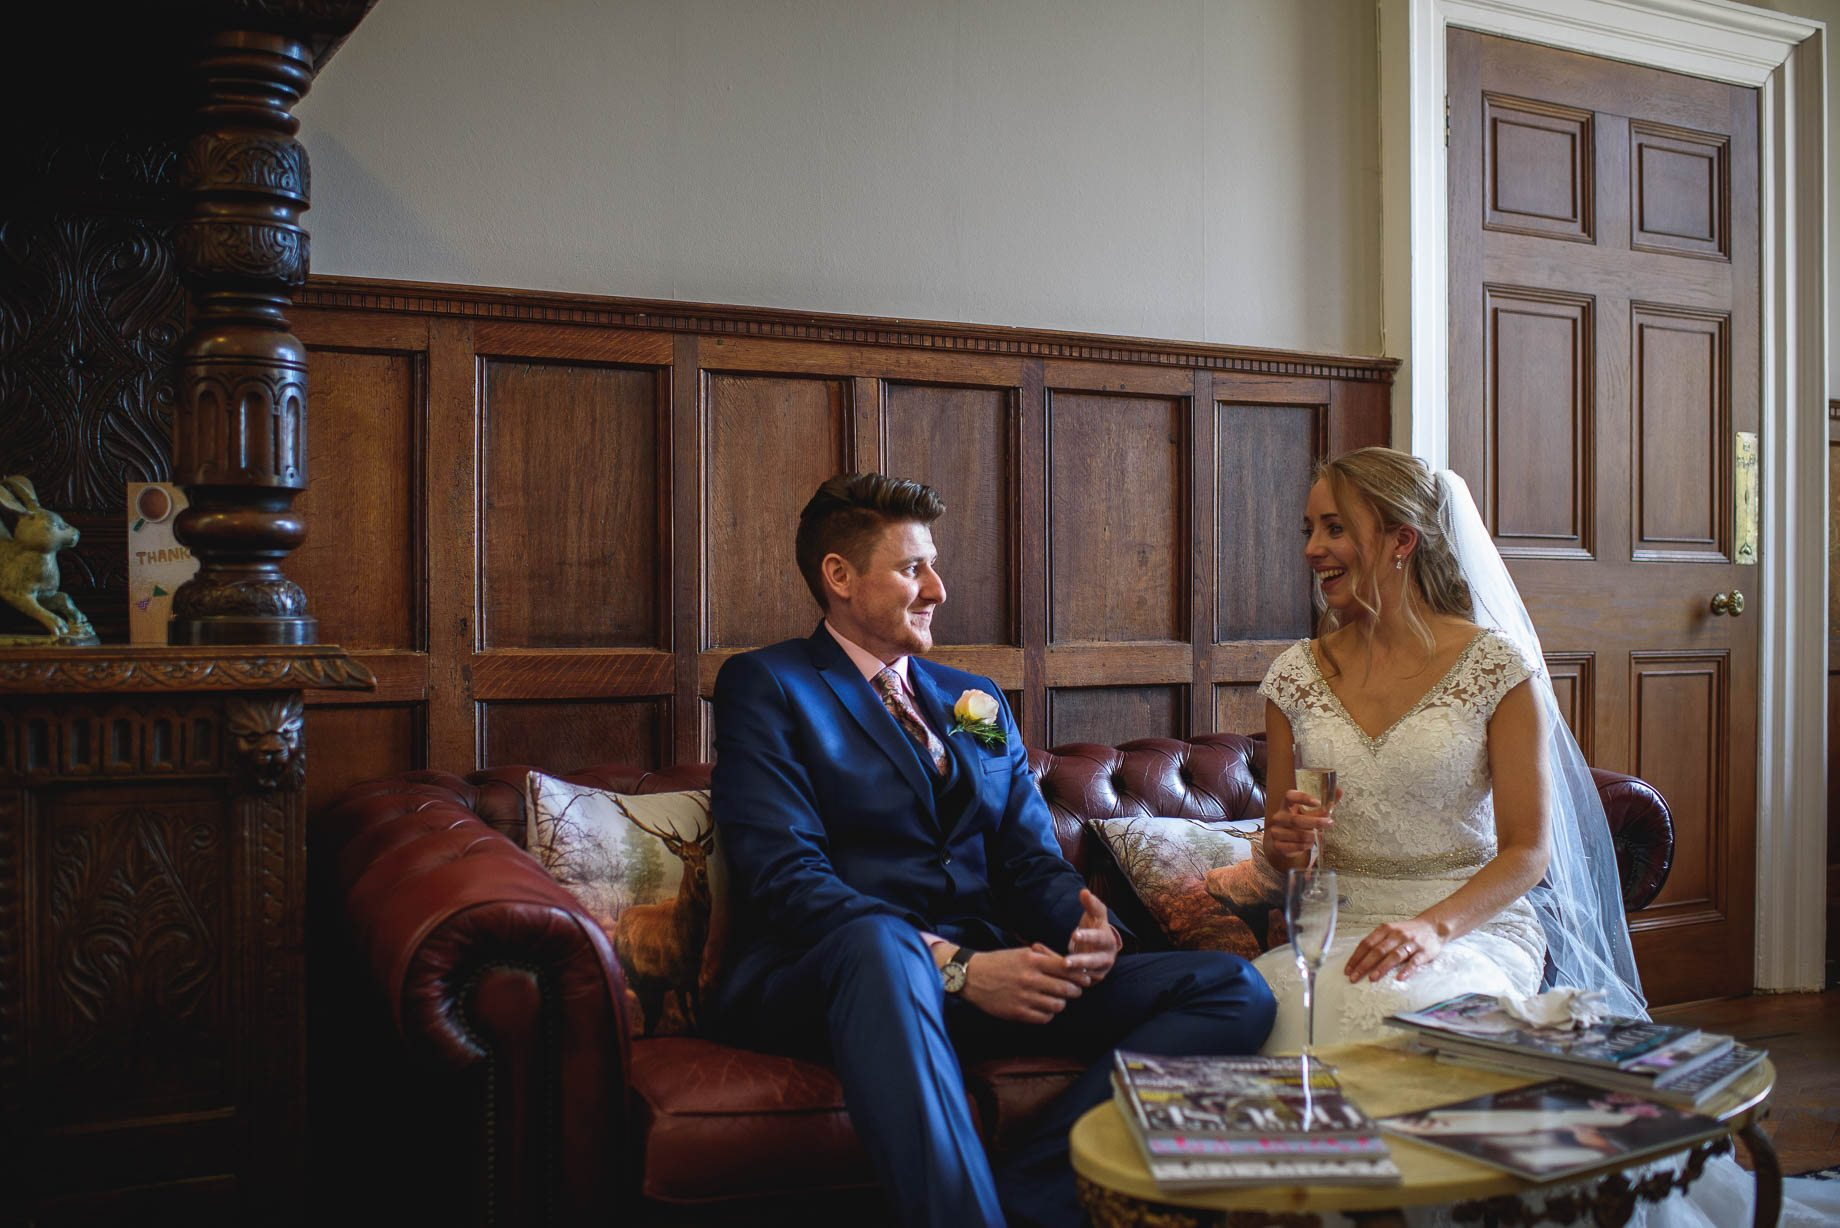 Hampshire wedding photography by Guy Collier - Emily and Tom (68 of 164)